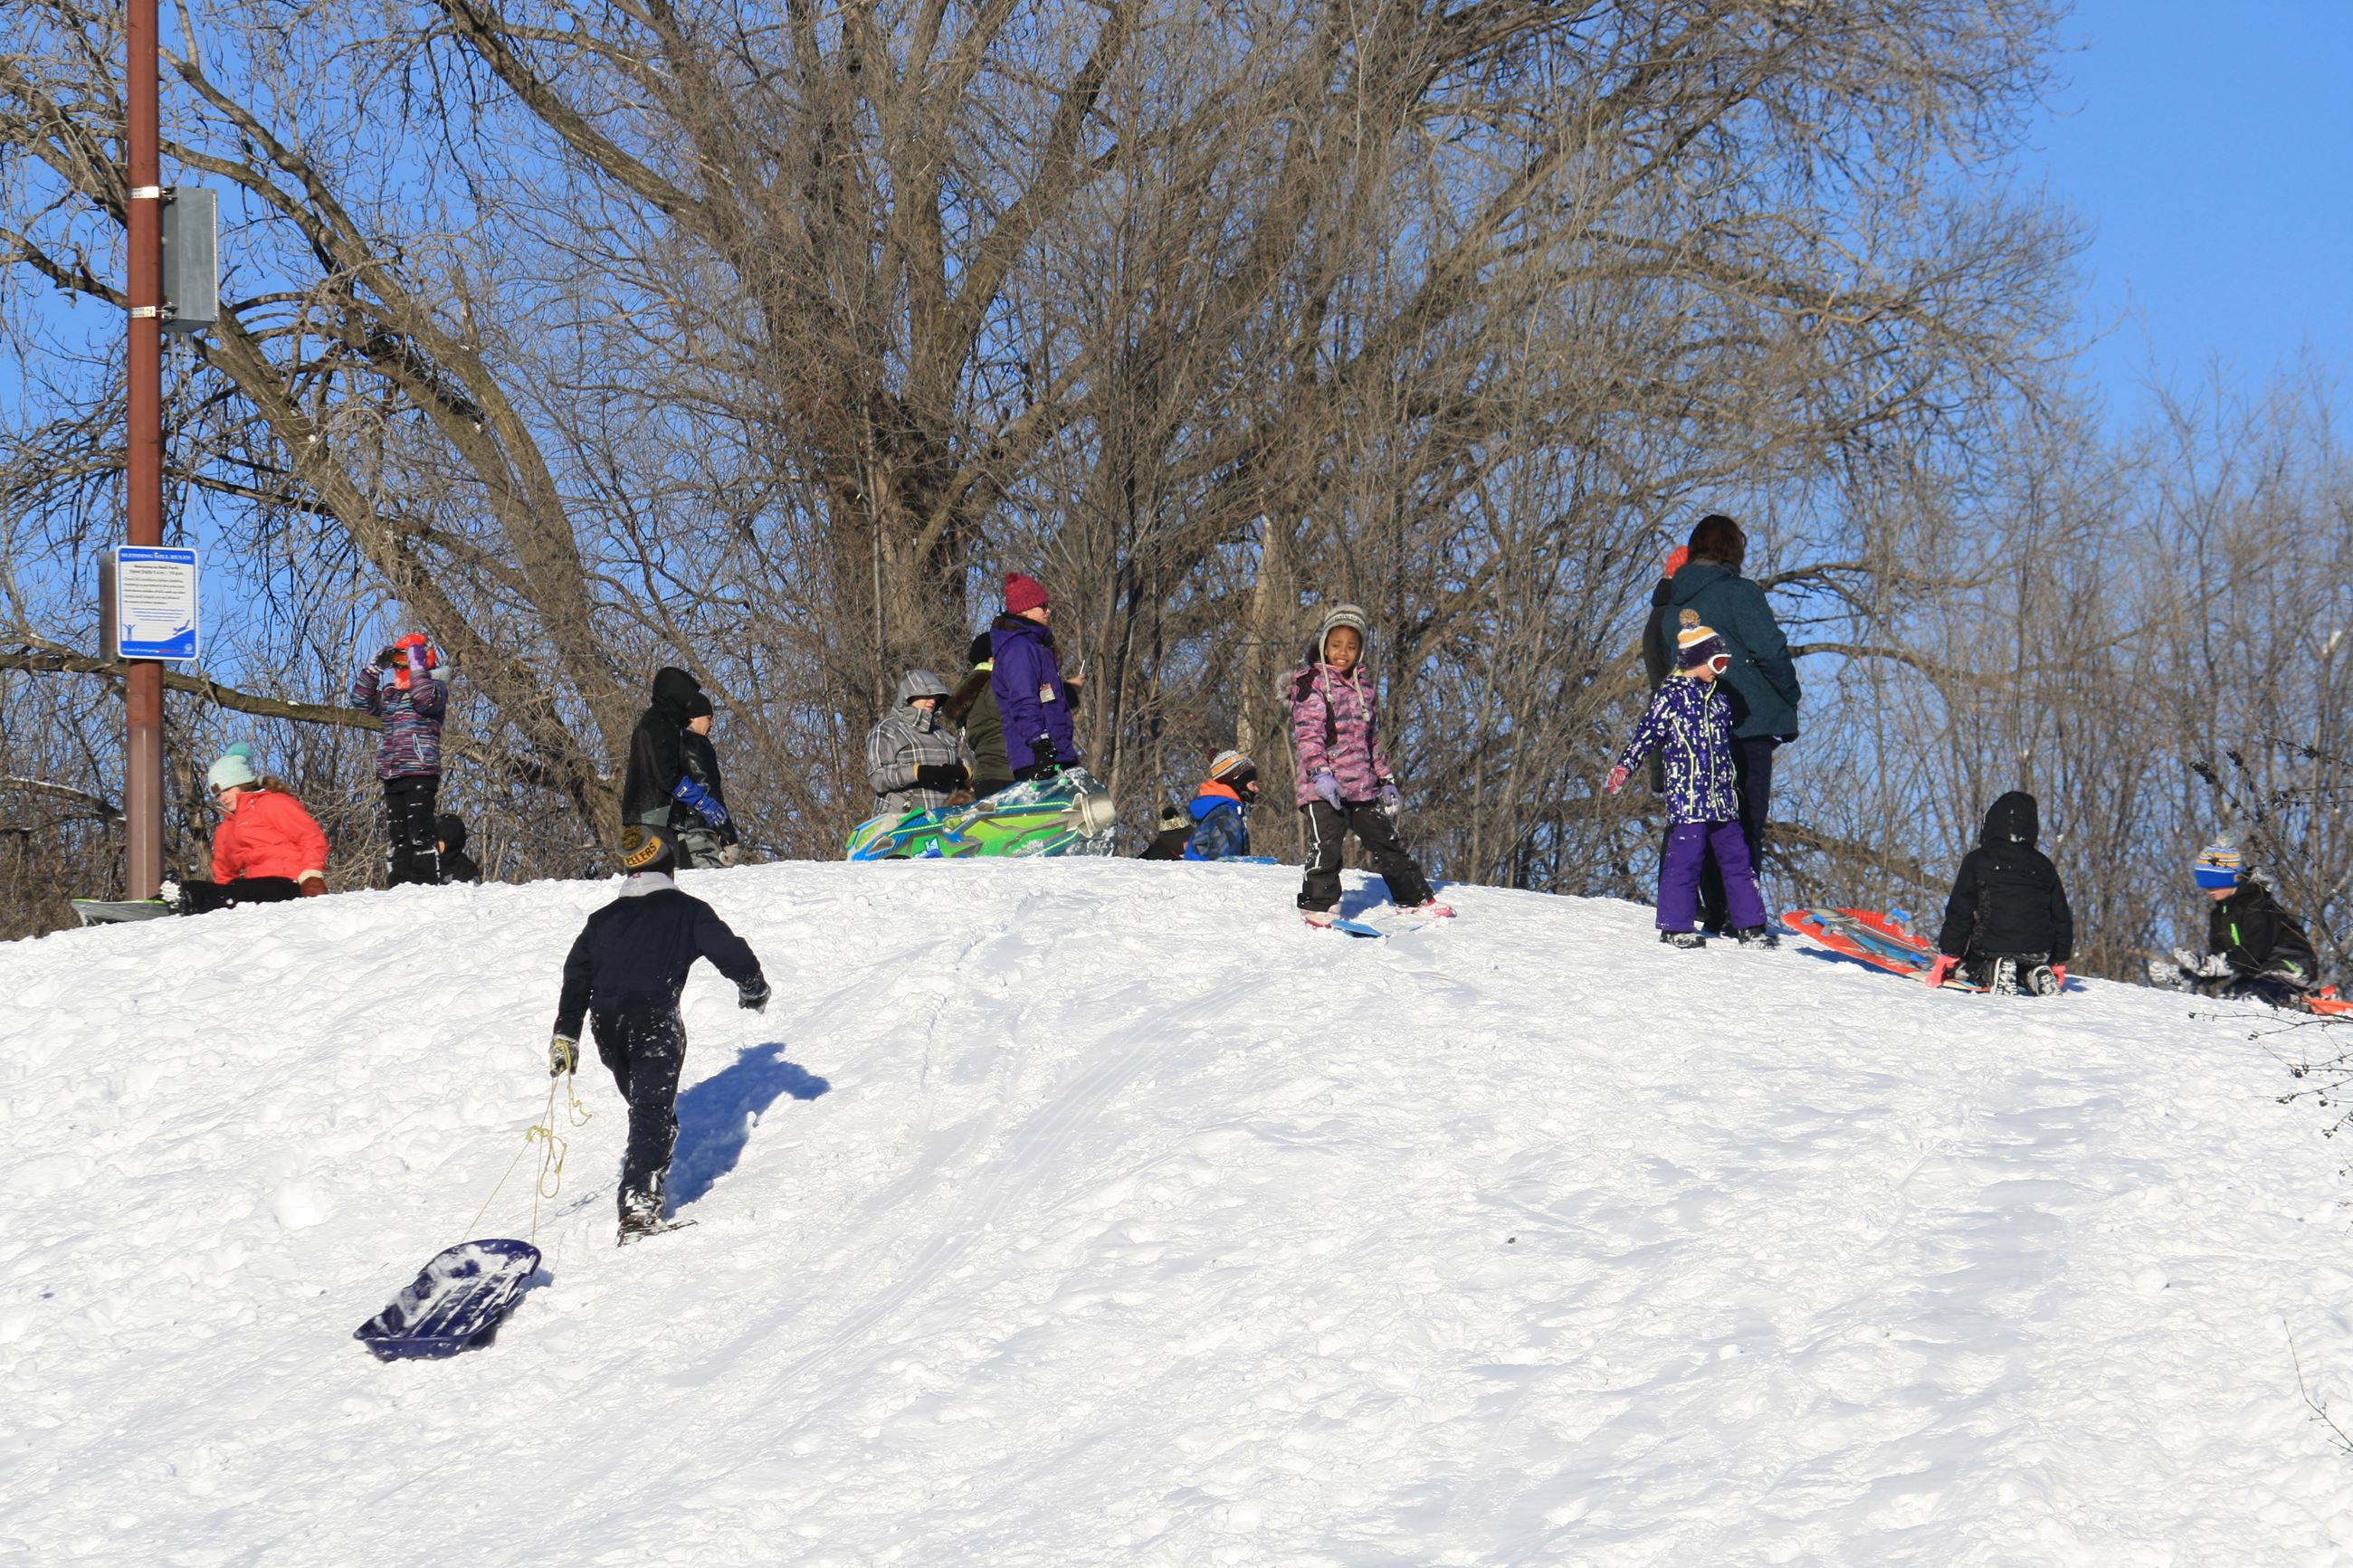 Children and adults stand with sleds on top of a snowy hill